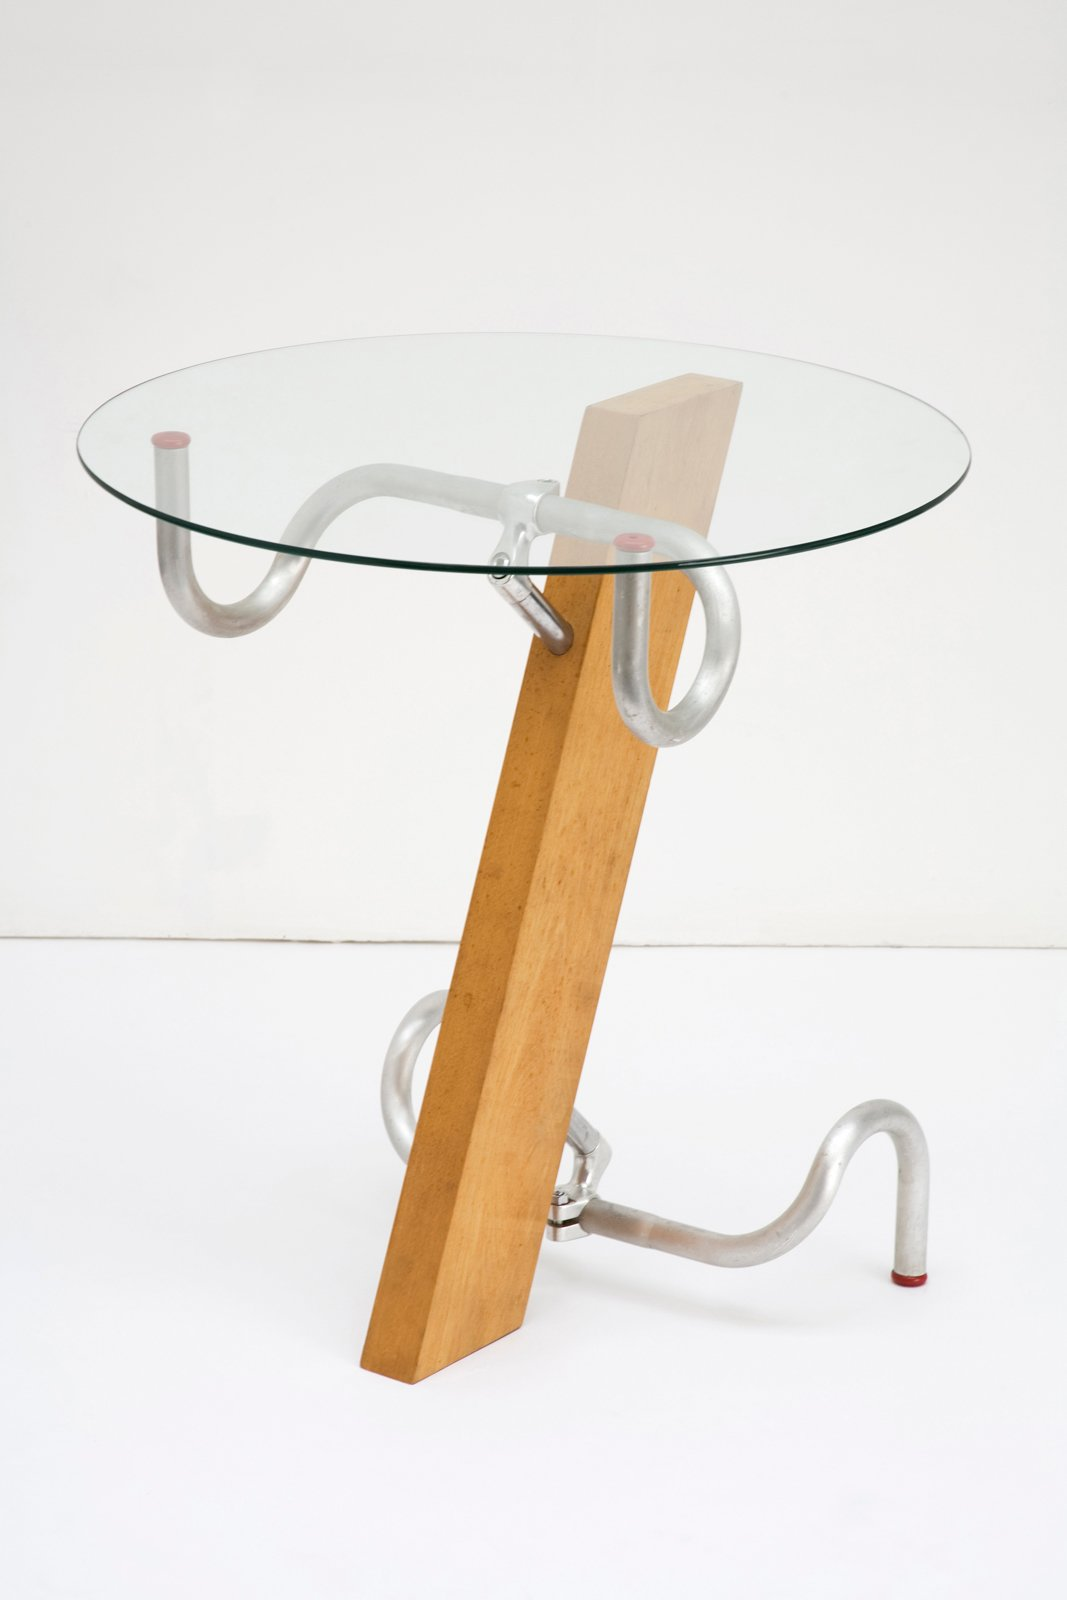 """Early in Jasper Morrison's career, he built a table of beech wood, glass, and two bicycle racing bar handles to give the piece a """"mass-produced quality"""" without benefit of a manufacturer. In 1983, the materials for one table cost about £20.00, and he sold them for five times that. """"The somewhat eclectic shape of the table itself was fitting to the mood of the time and my own frame of mind, a kind of poetic, anti-establishment, business-like attitude,"""" Morrison is reported as saying years later.  Design Museum London's Extraordinary Stories about Ordinary Things by Rebecca L. Weber"""